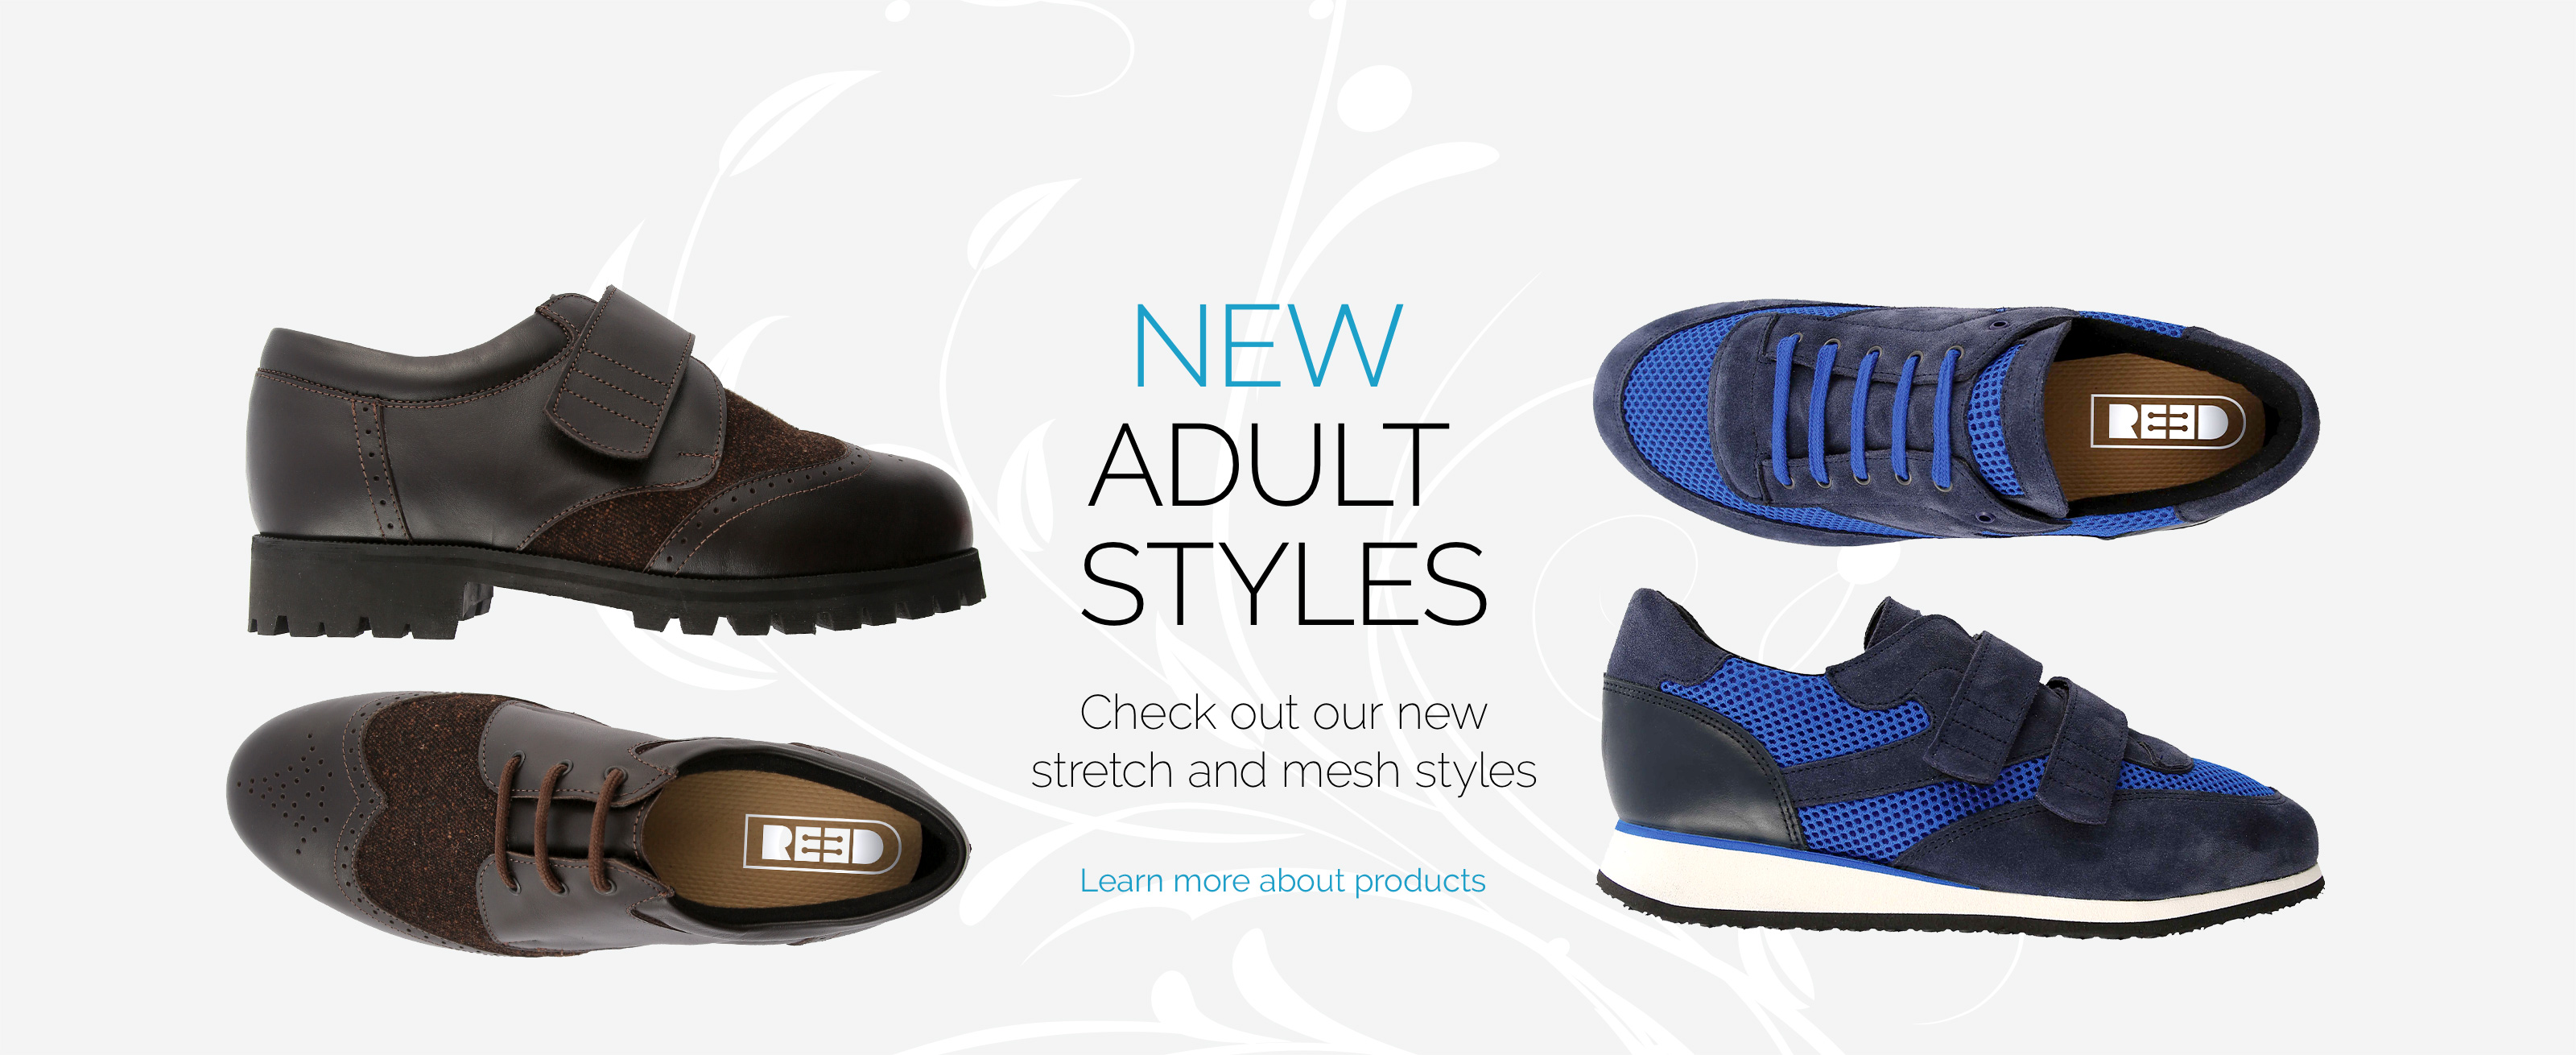 New Adult Styles